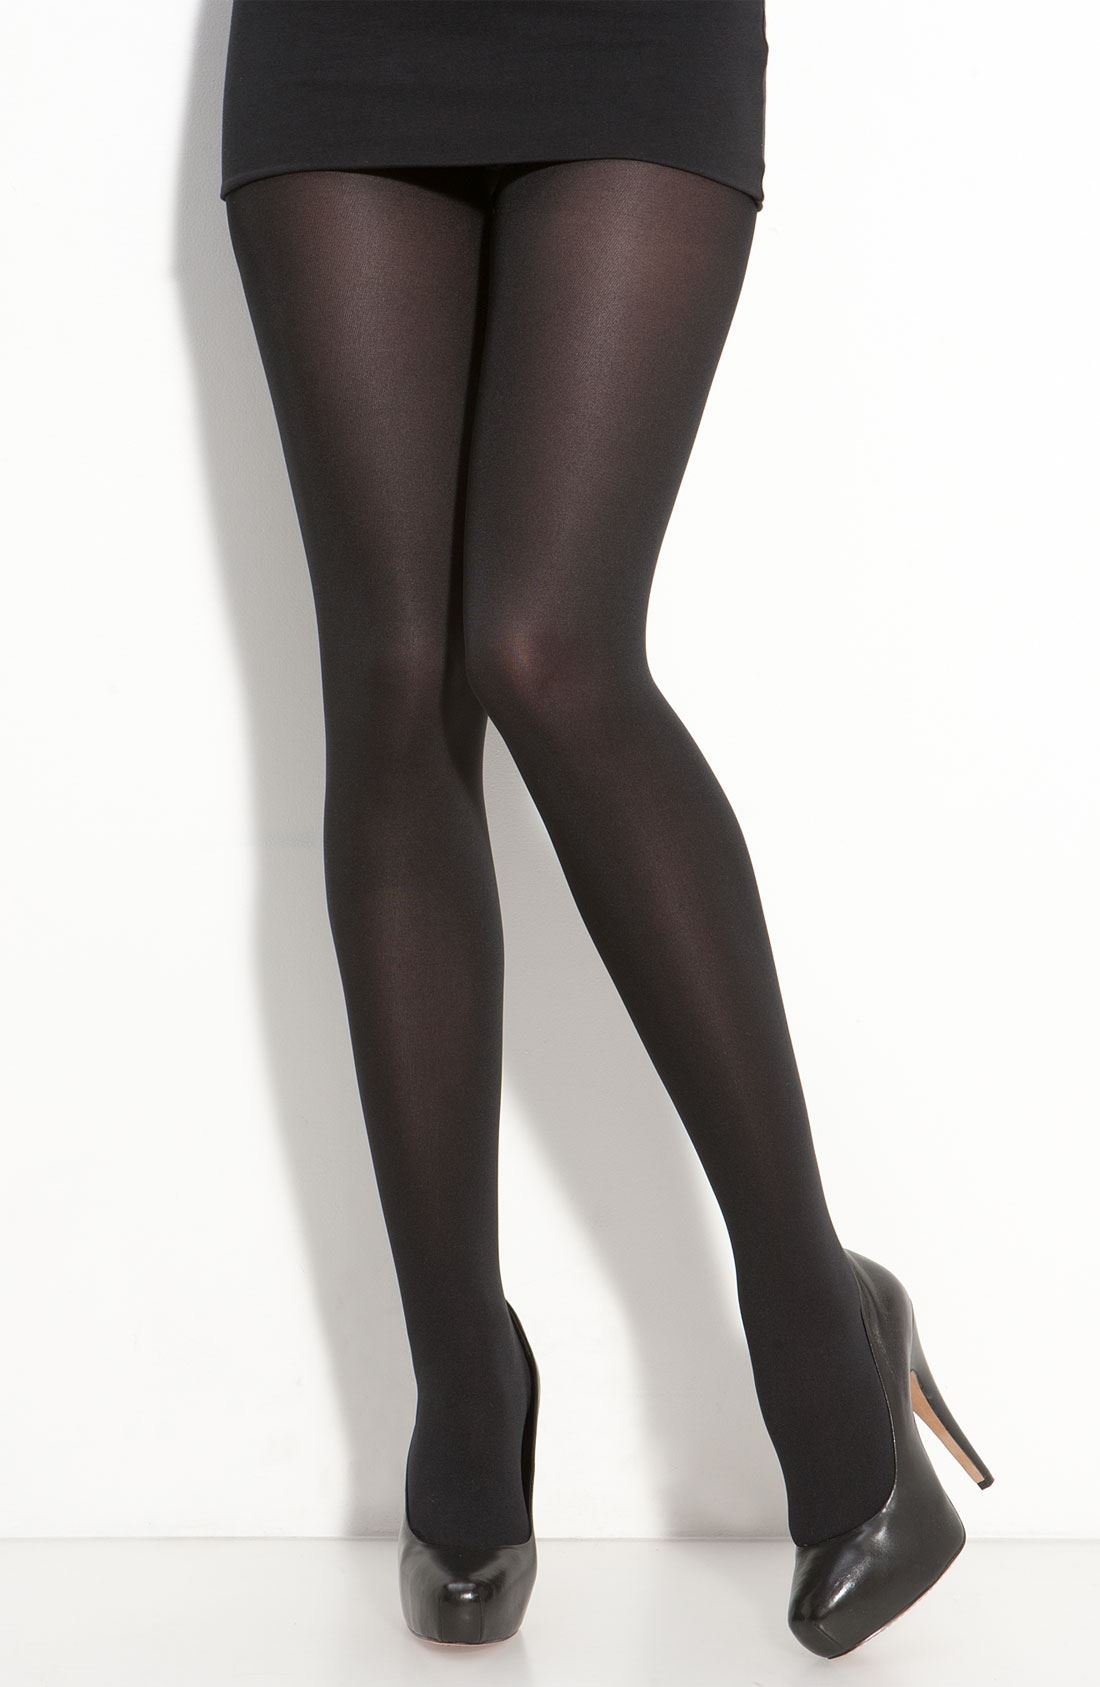 The LBD of hosiery. As the temperature dips, reach for our opaque black tights to keep your dresses and skirts in heavy rotation. Plus, we designed them with a control-top waistband to keep your profile sleek. Control-top opaque tights Nylon/spandex. Hand wash cold. Imported.